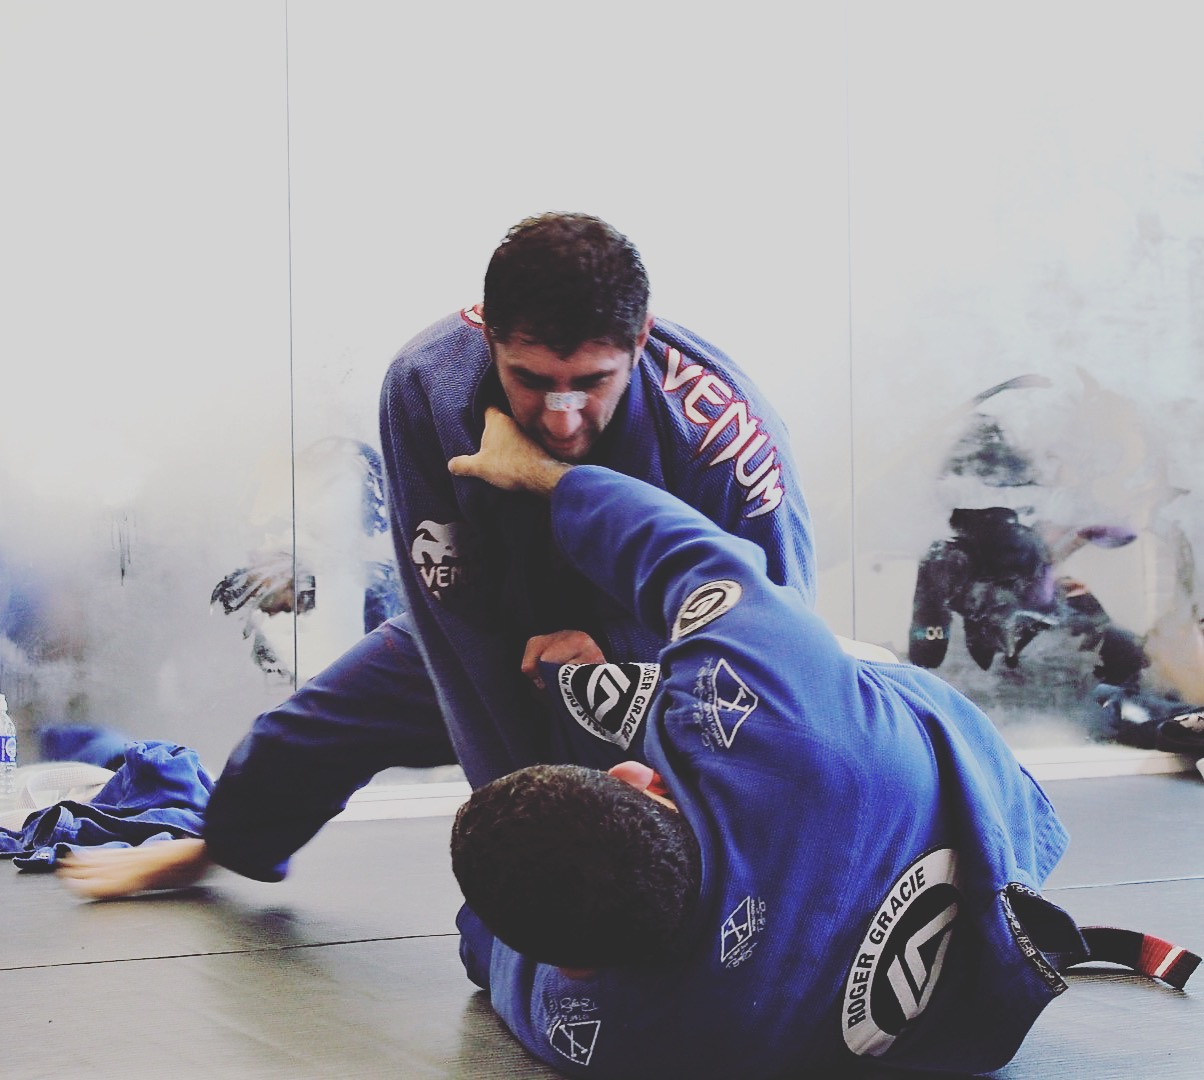 Brazilian Jiu Jitsu Advanced - This class is for those who have reached a certain level and can now understand more complex positions. It also includes a lot more sparring and pushes you to the limit. It's not for the feint of heart.